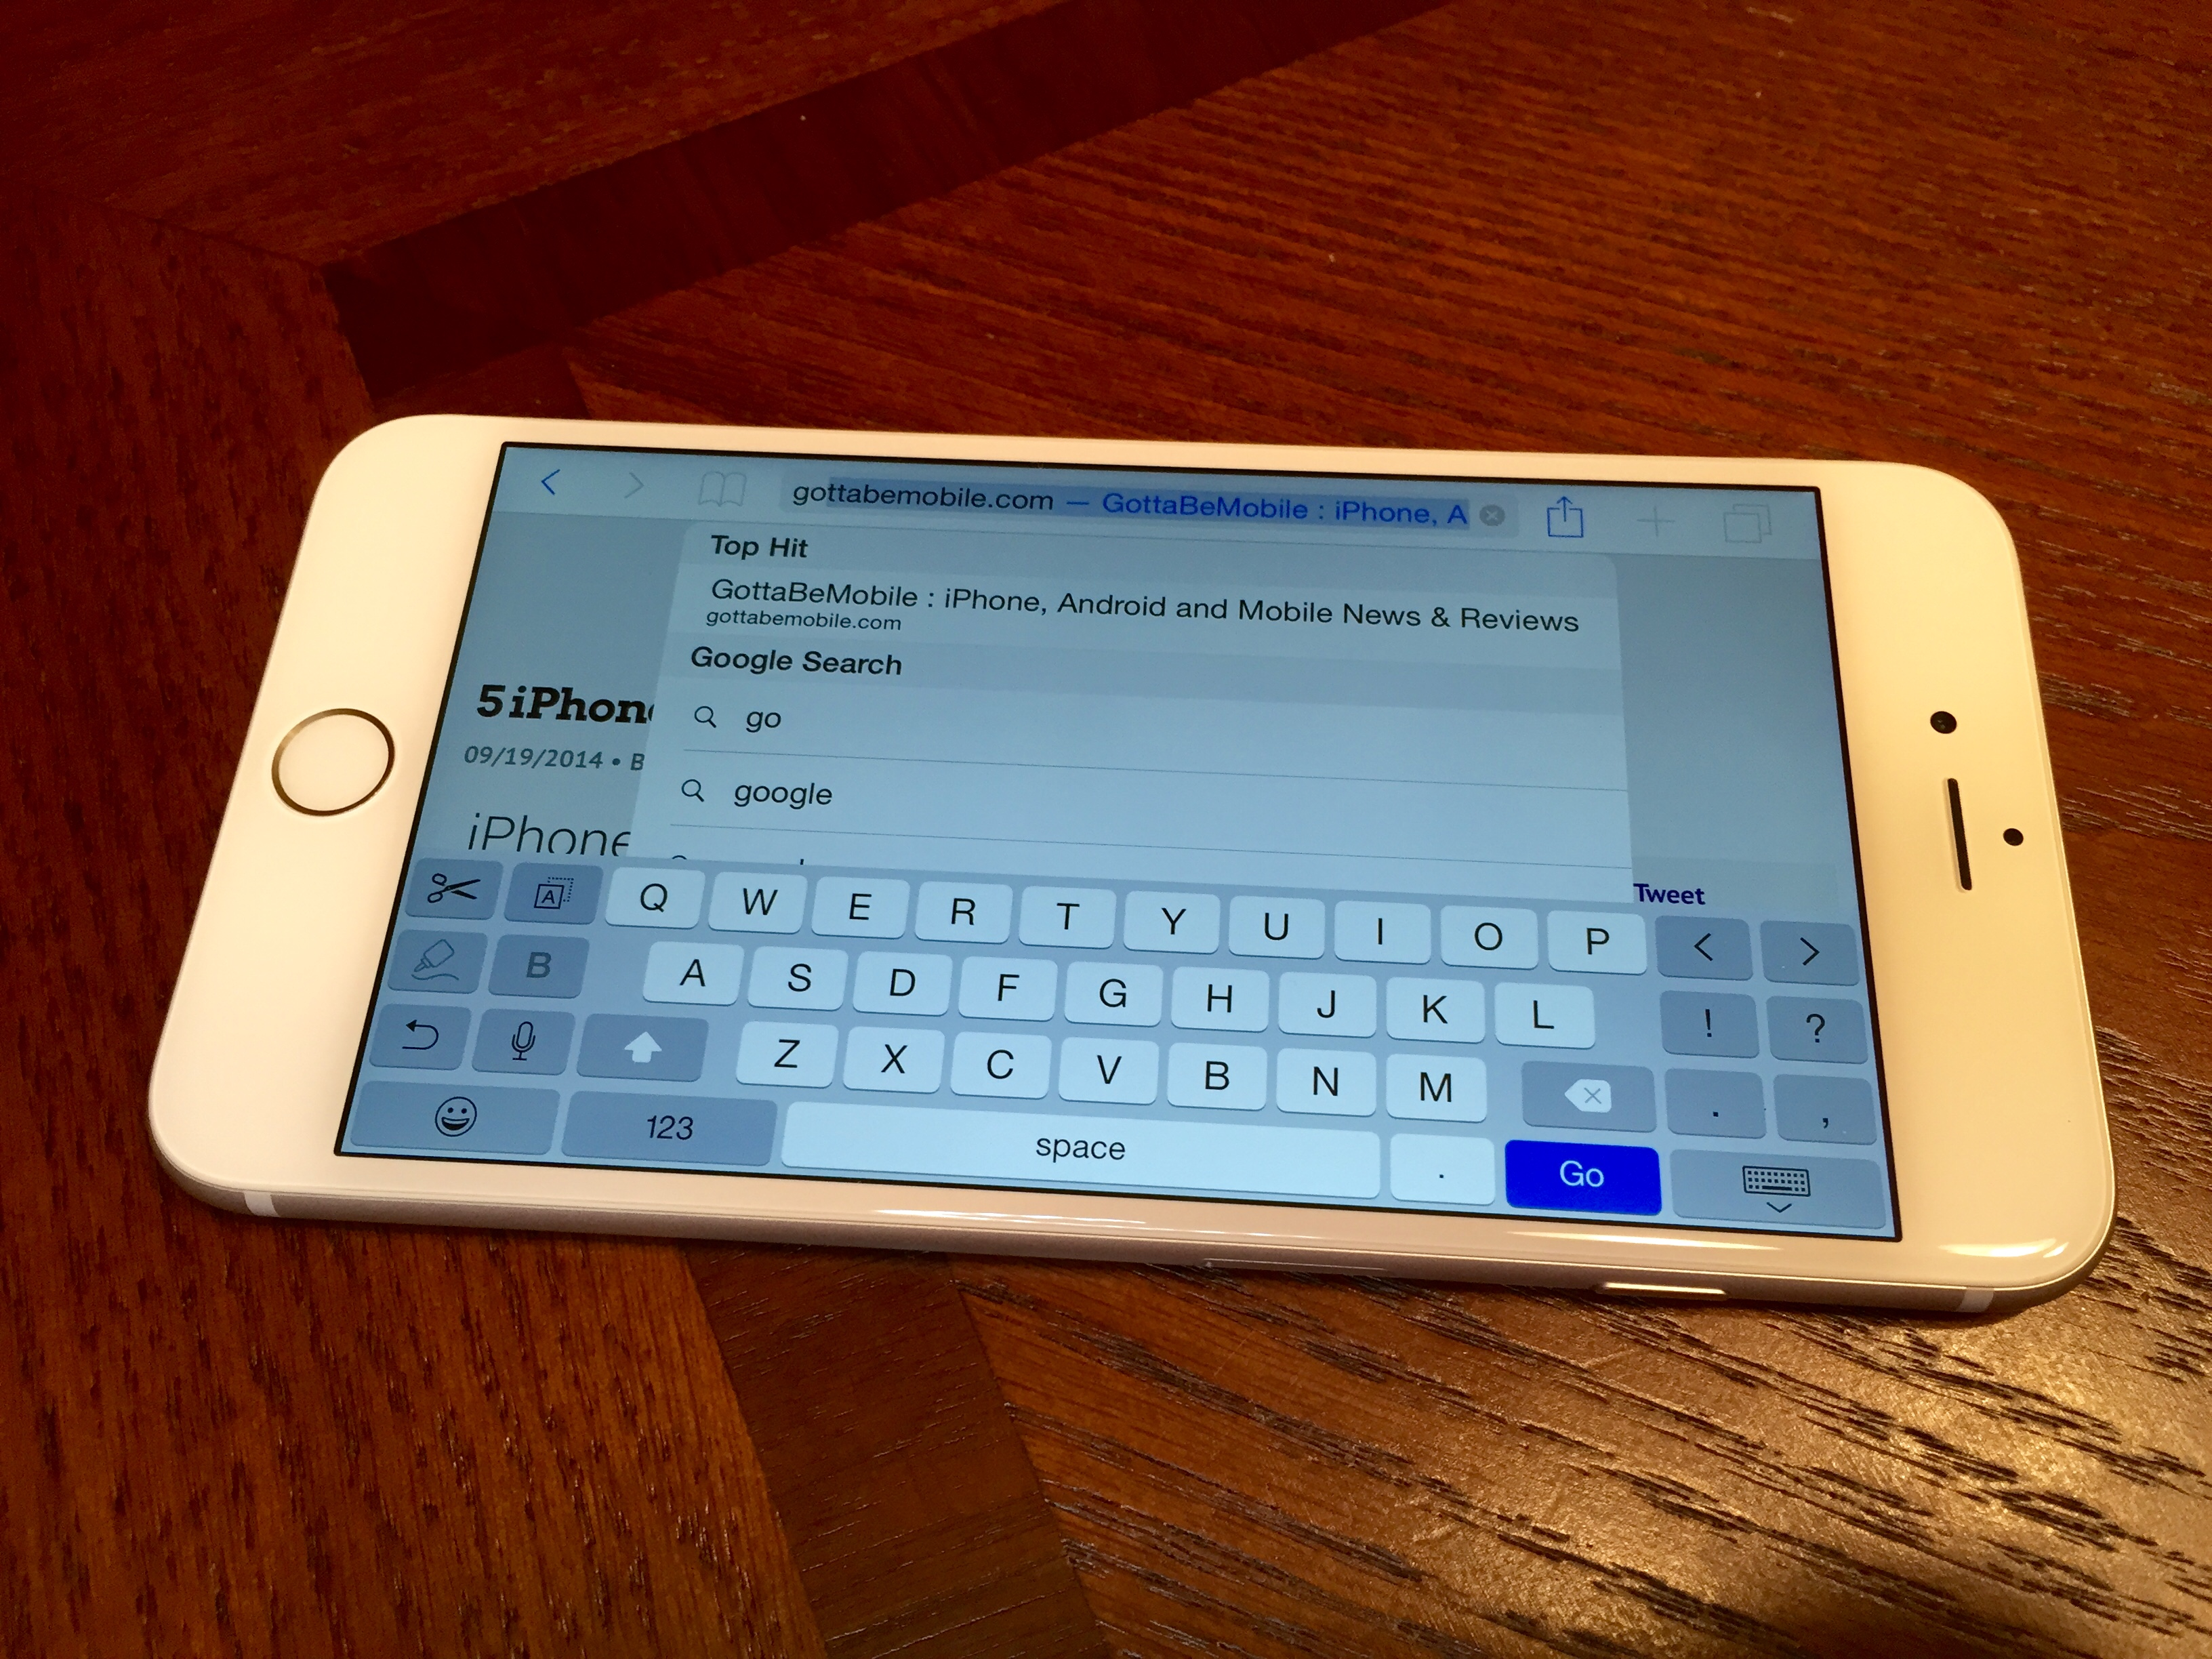 10 Things to Know About the iPhone 6 Plus iOS 8.4.1 Update